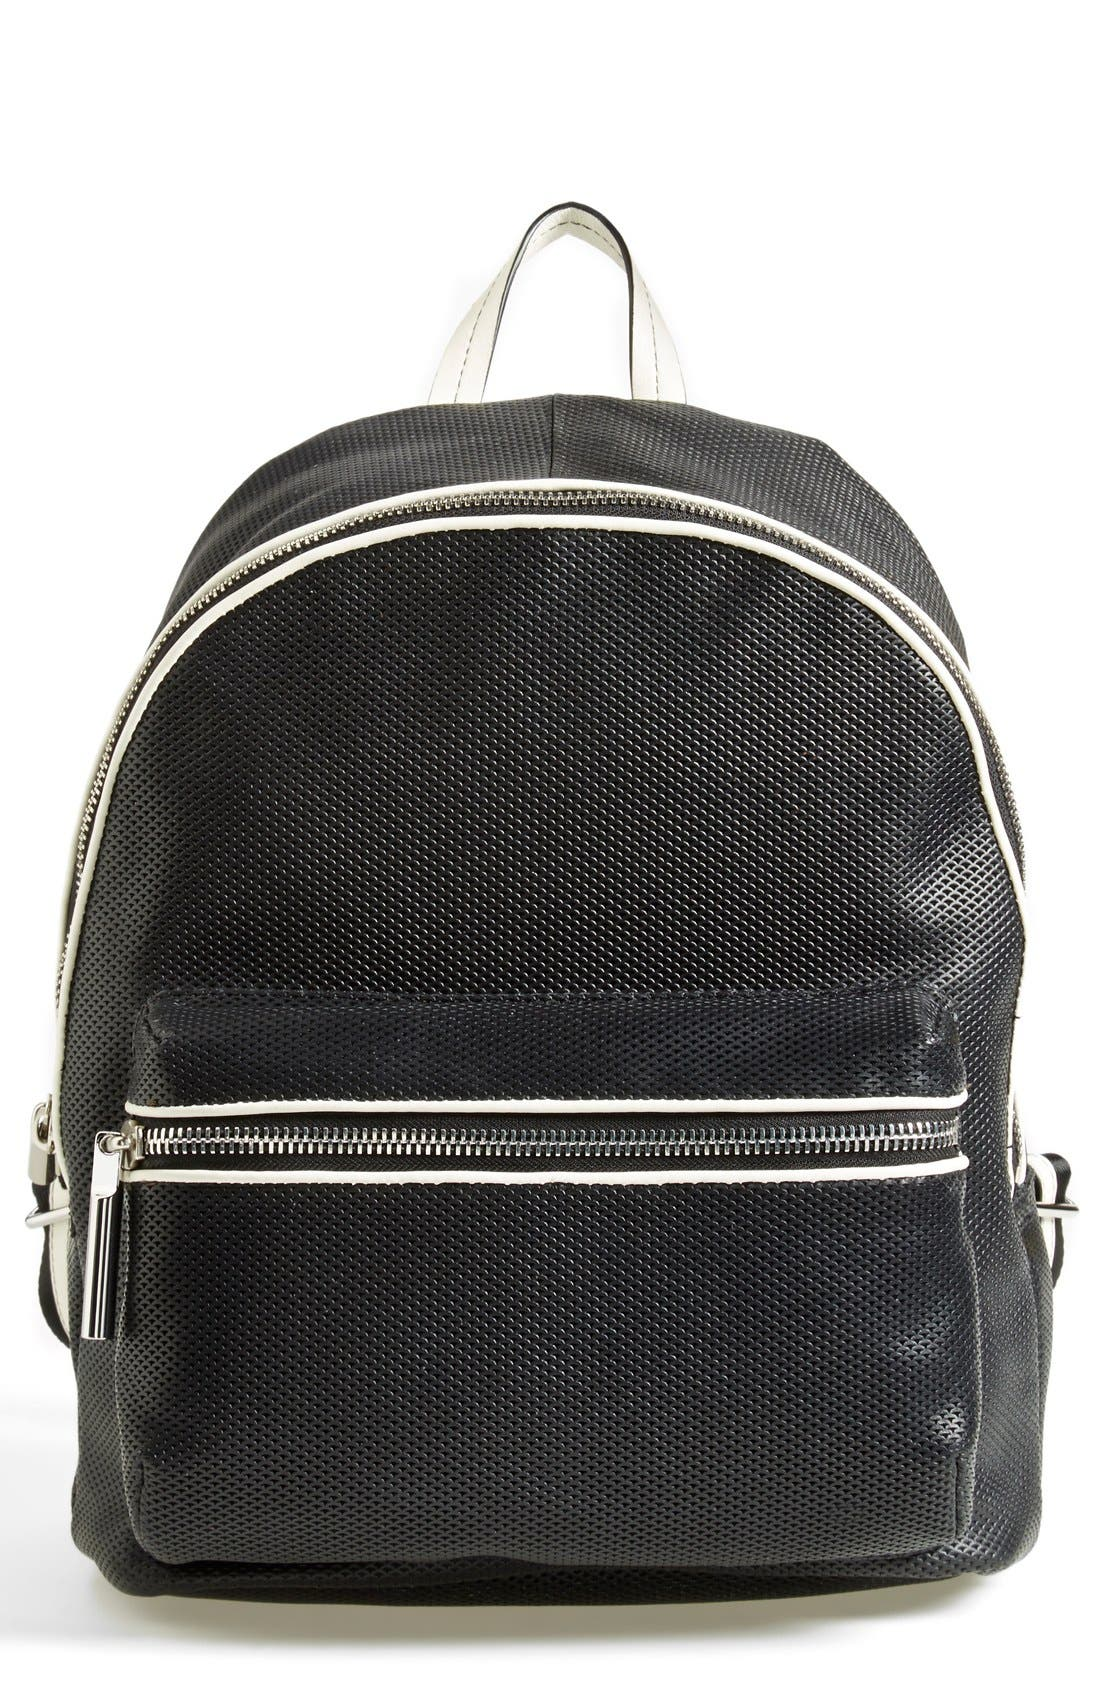 Main Image - Elizabeth and James 'Cynnie' Perforated Leather Backpack